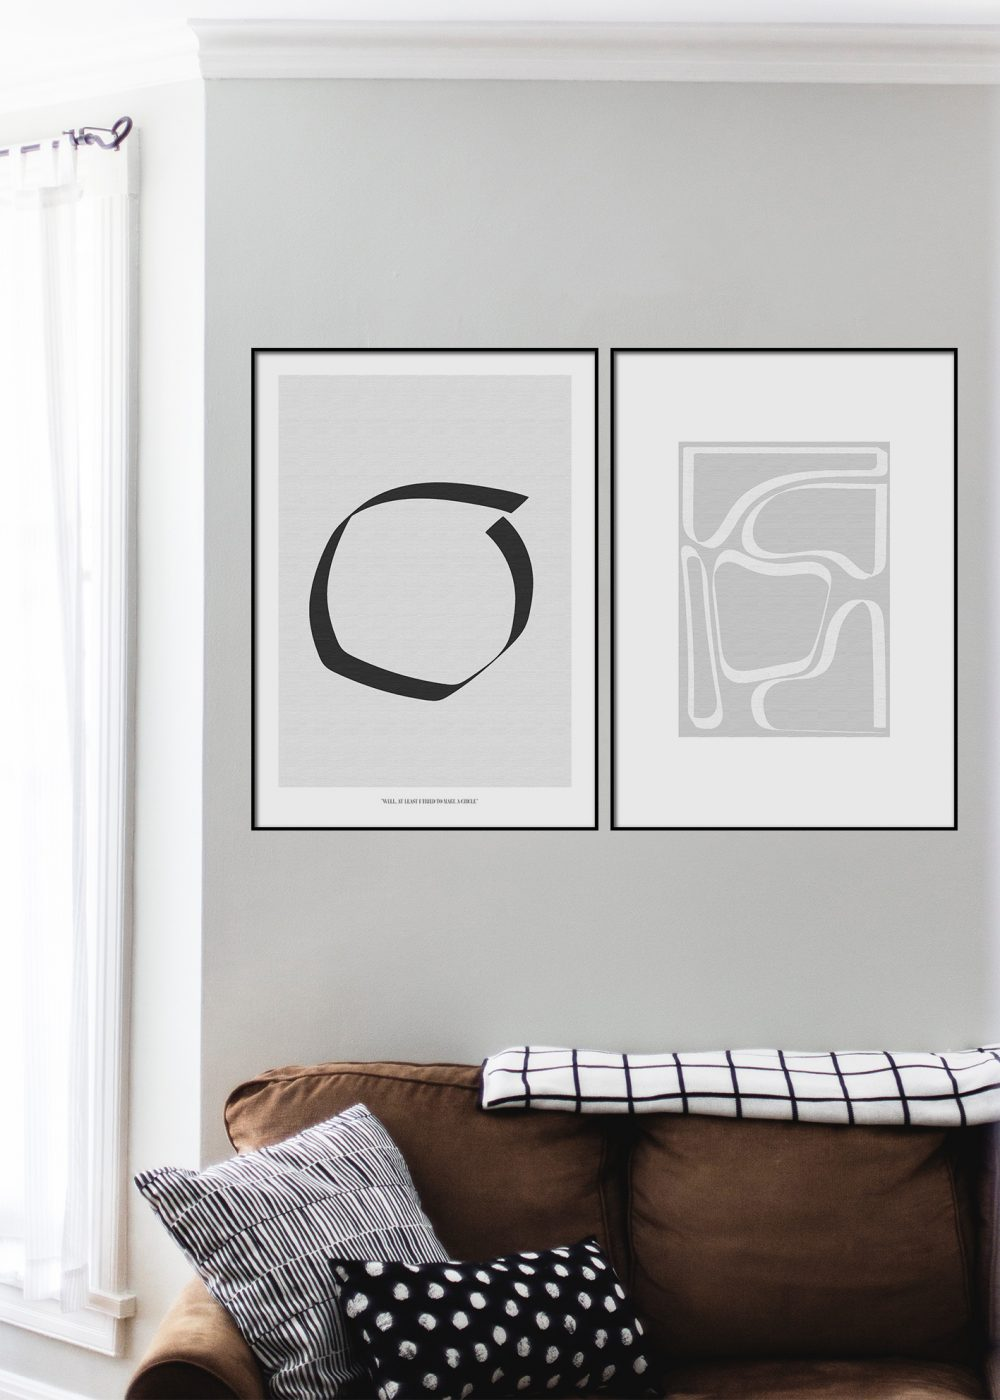 poster by design nyheter